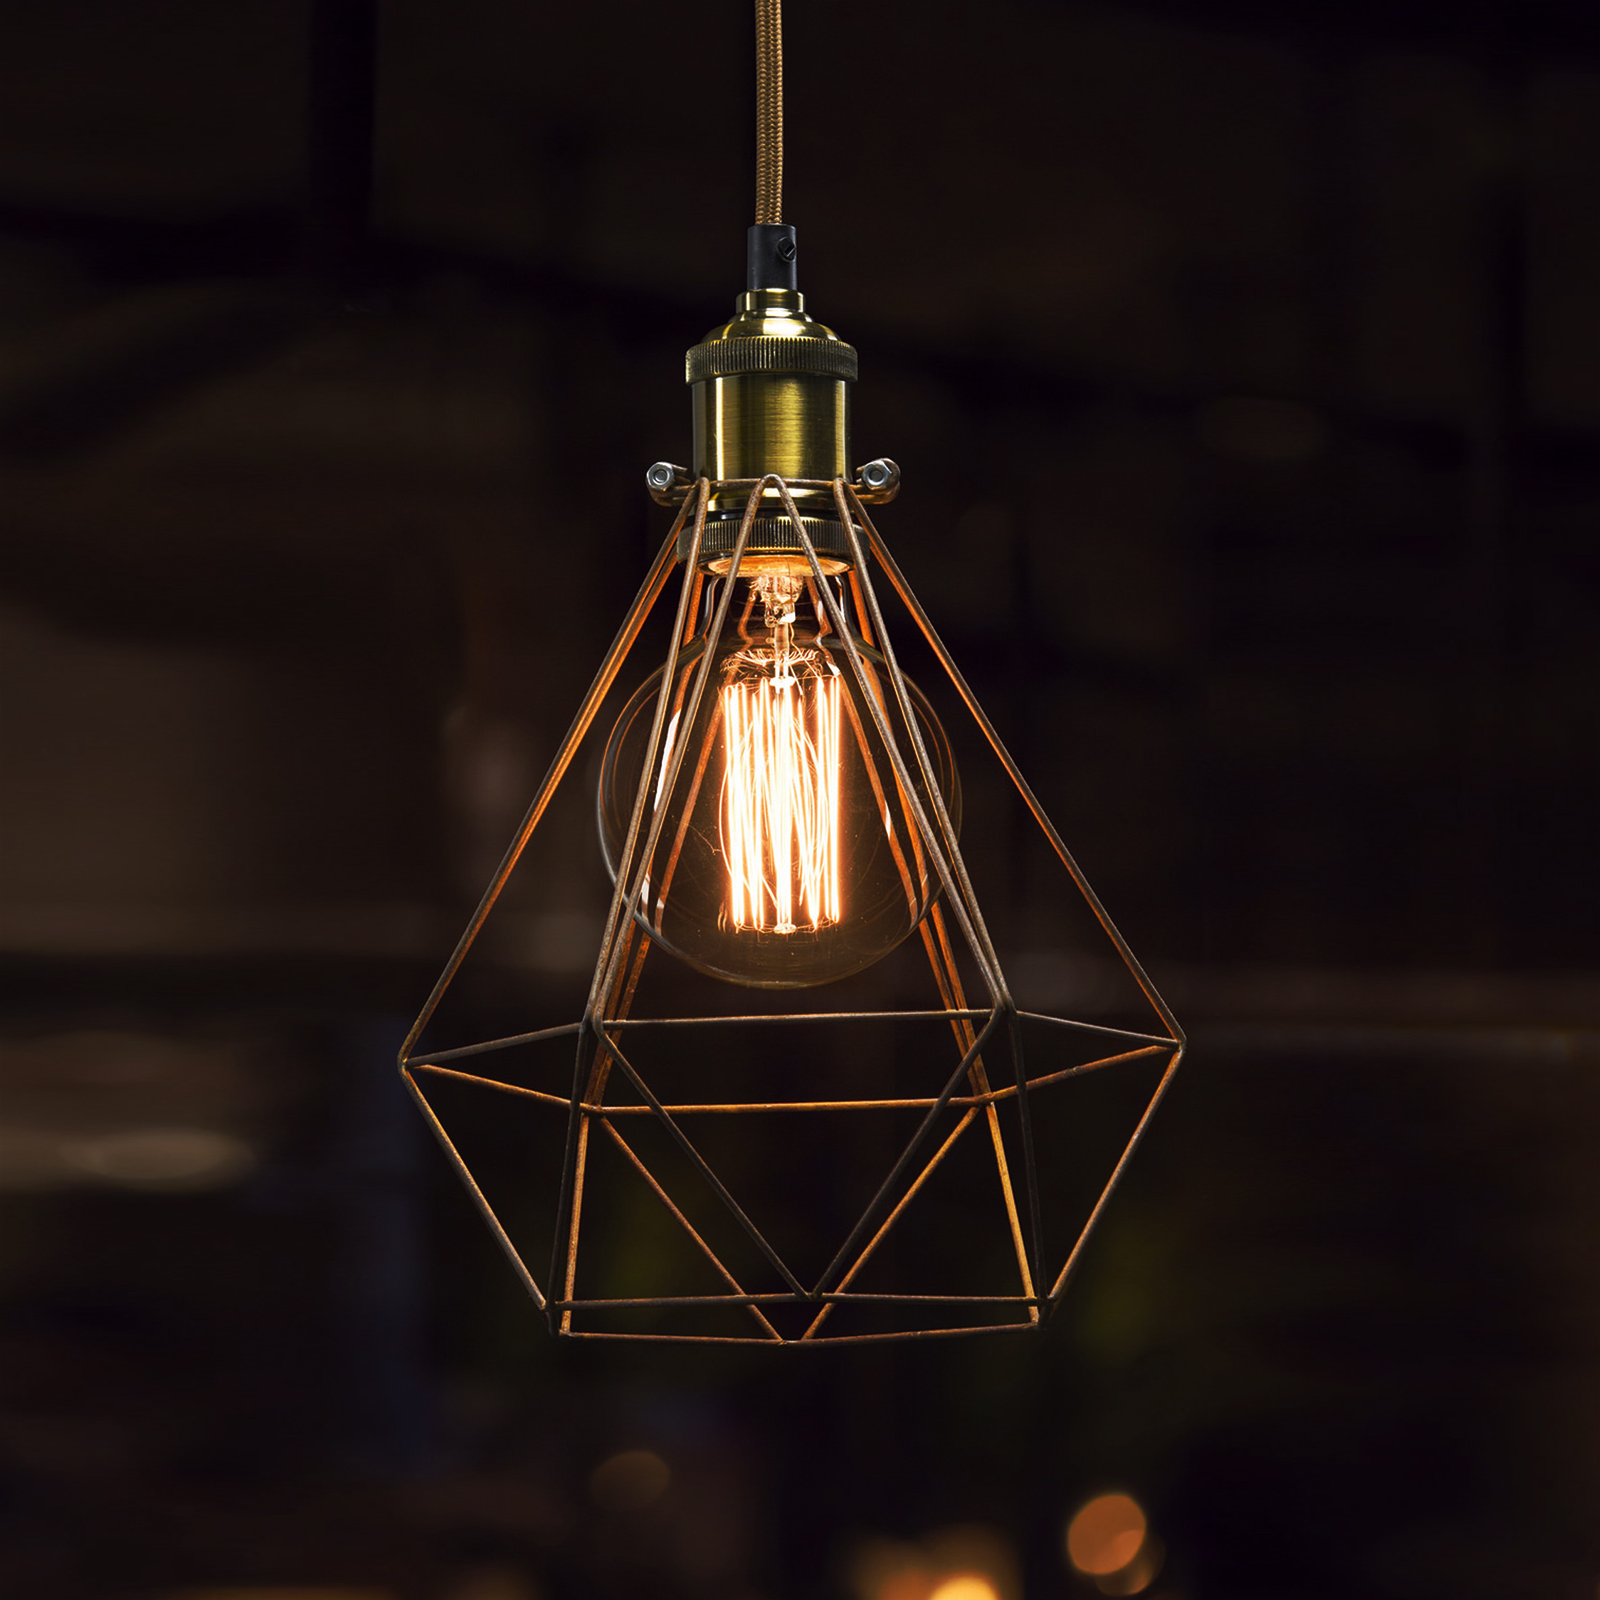 images of vintage lighting bulb-cage-light-fittings-bulb-cage- YPQLZJC